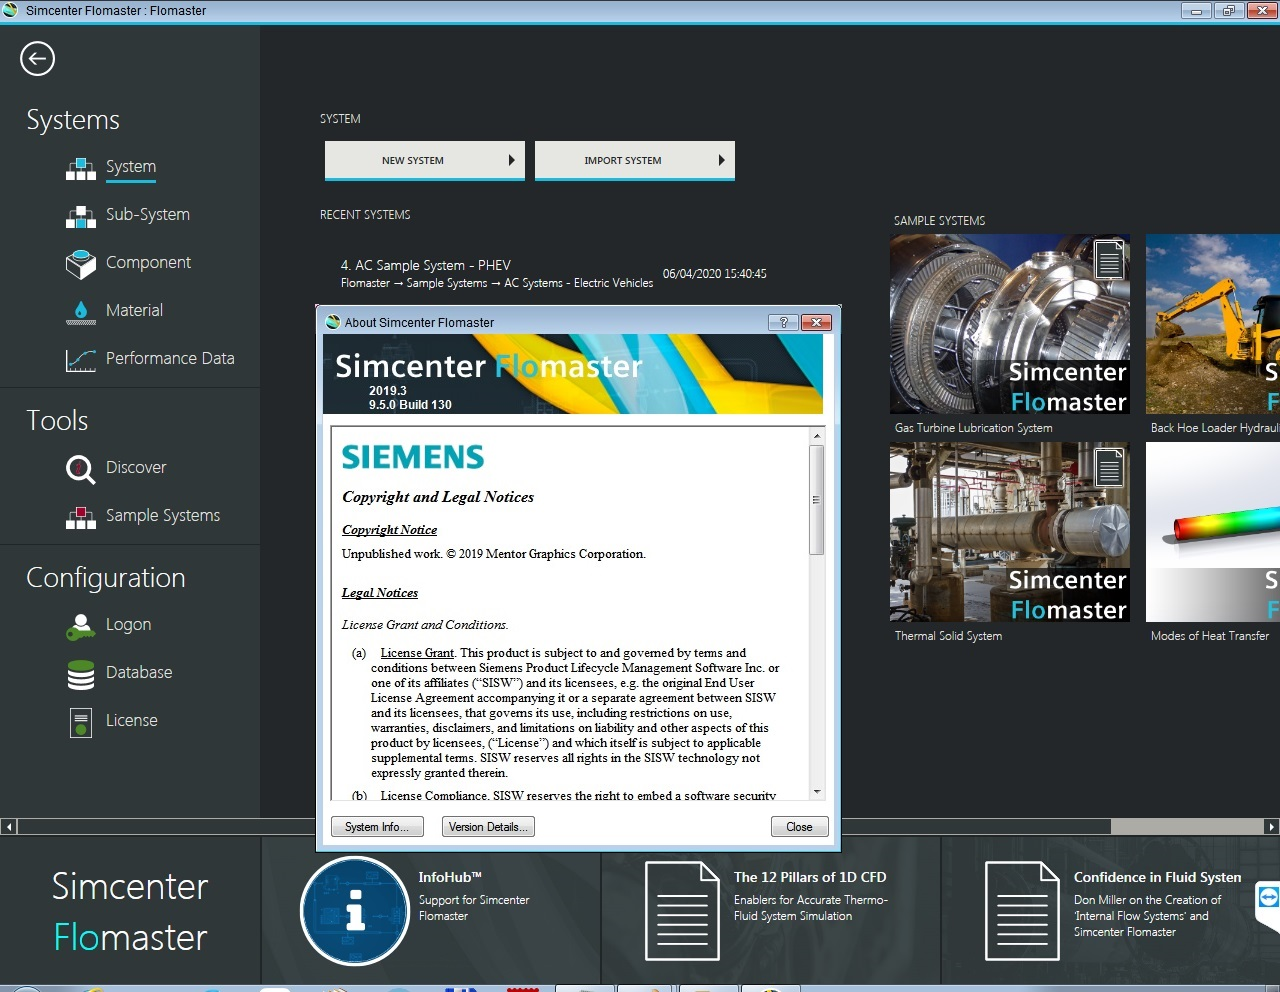 Working with Siemens Simcenter Flomaster 2019.3 full